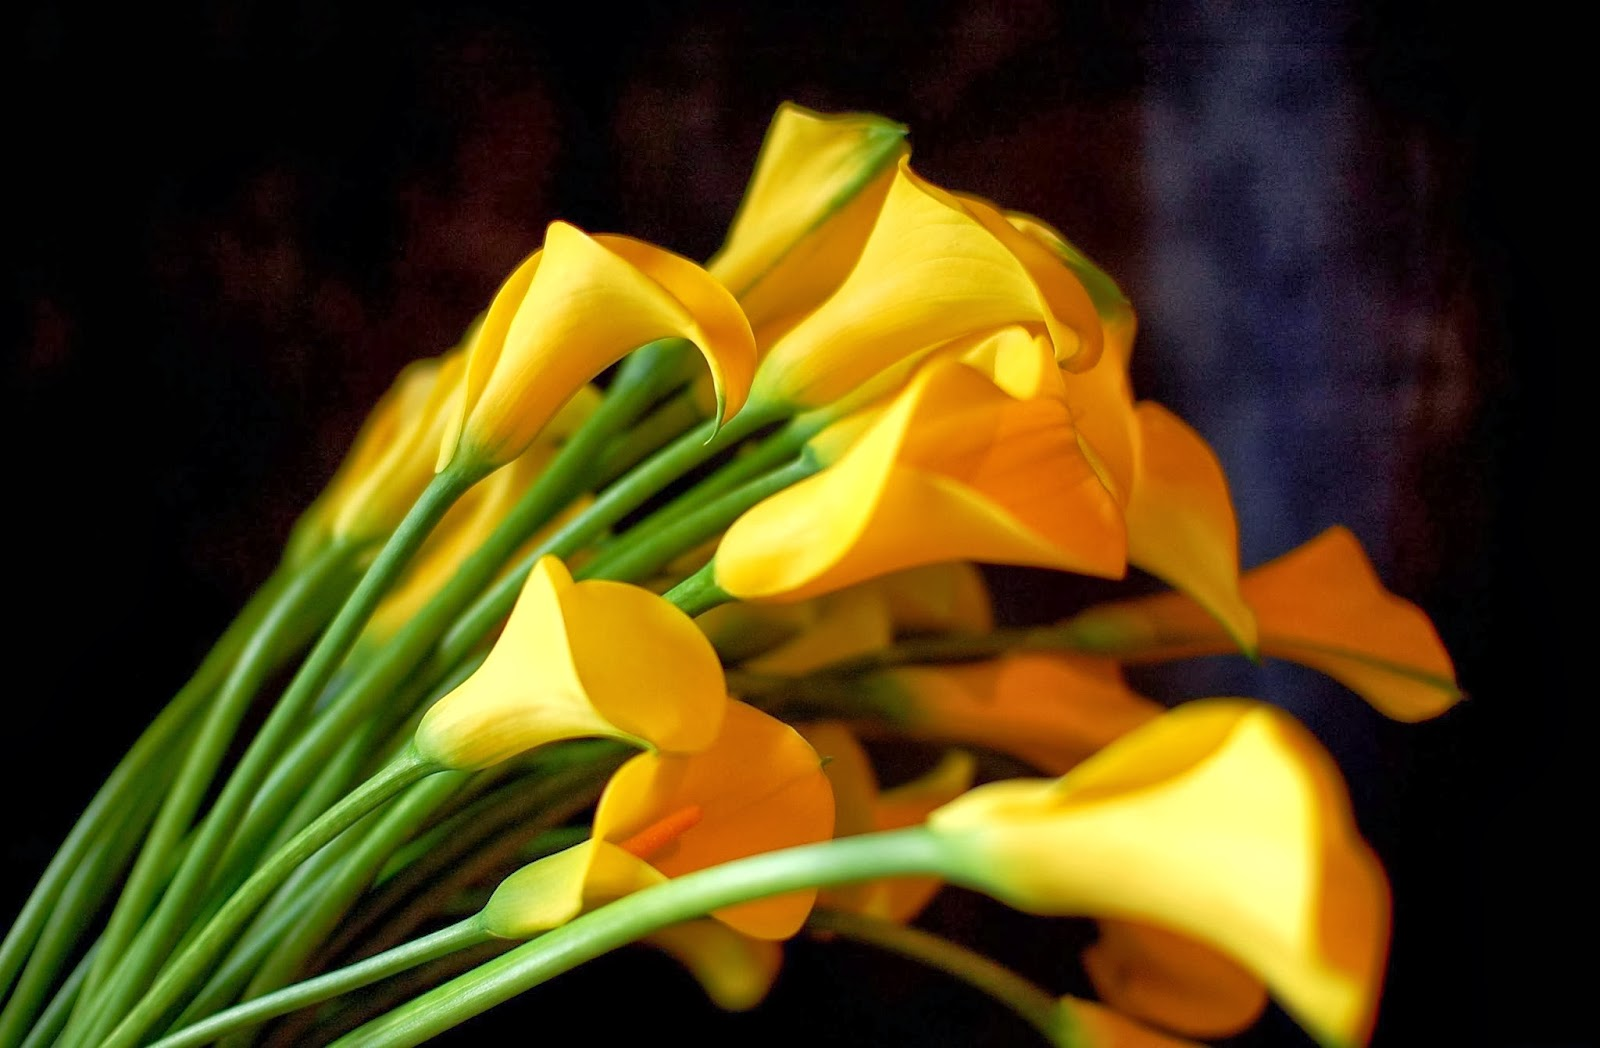 Beautiful flowers and their names types of flowers and their meaning yellow calla lily flowers 1600 x 1048 izmirmasajfo